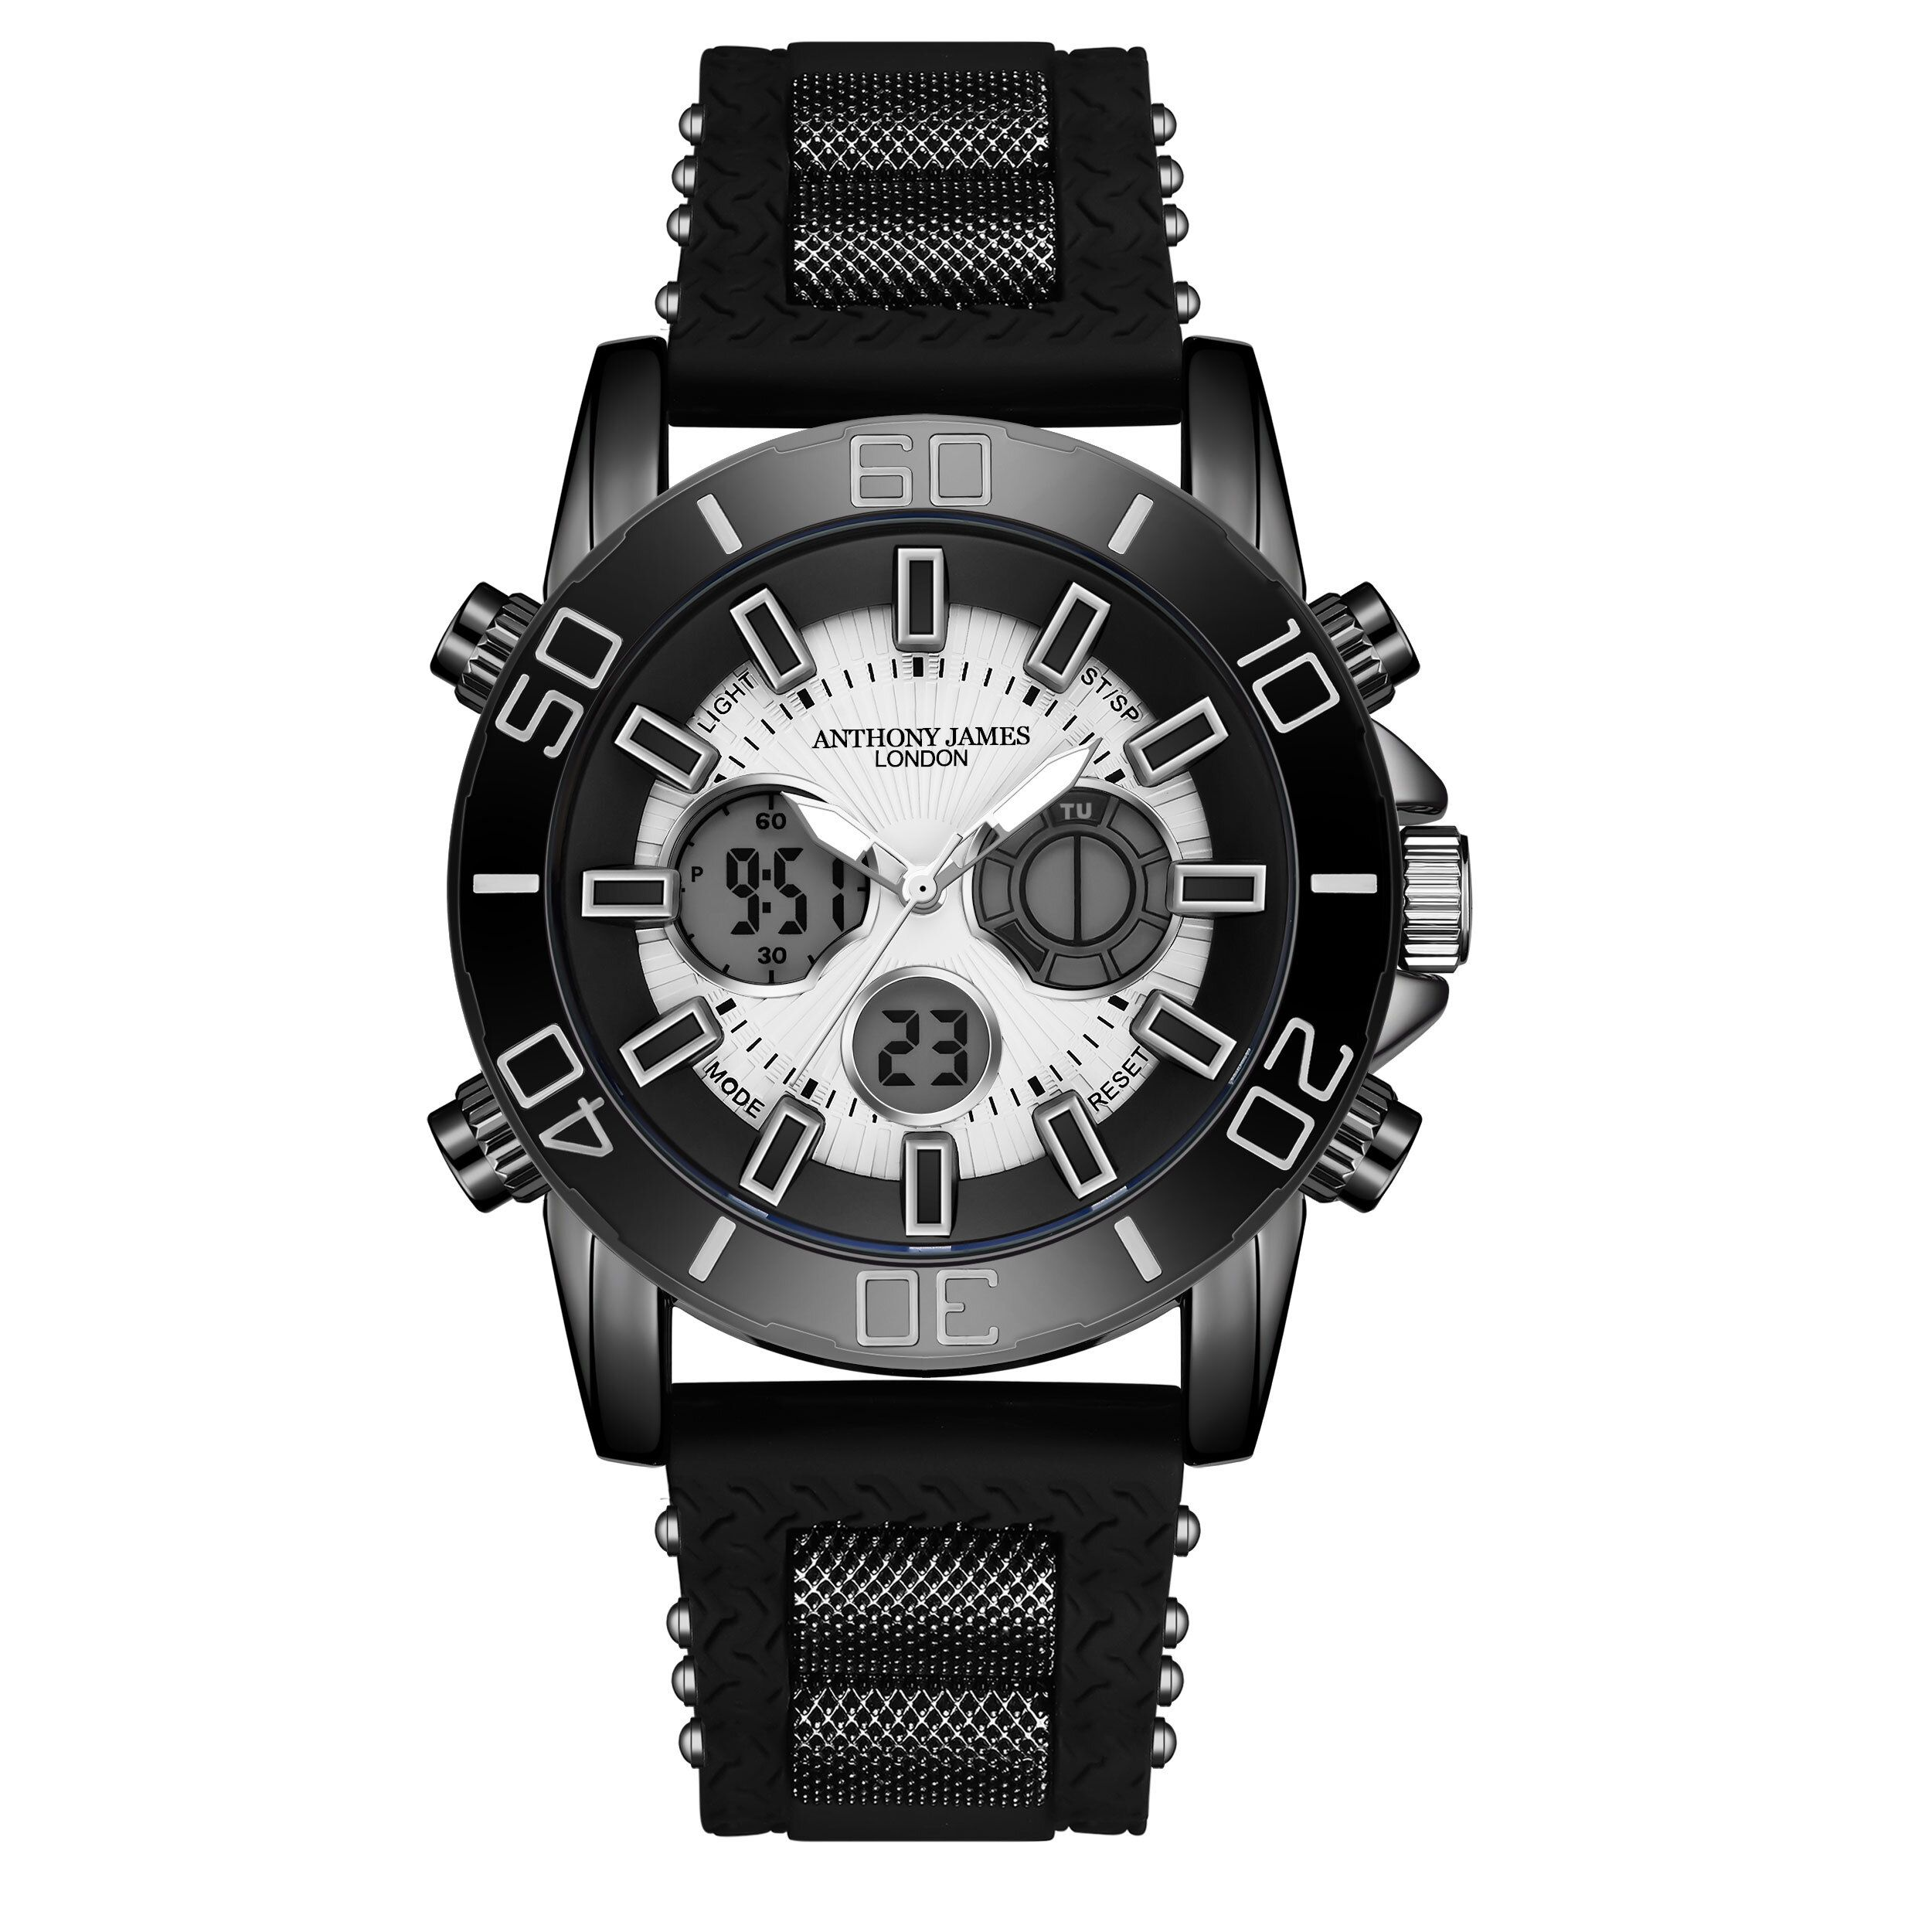 Hand Assembled Anthony James Limited Edition Sports Chrono Black - 5 Year Warranty